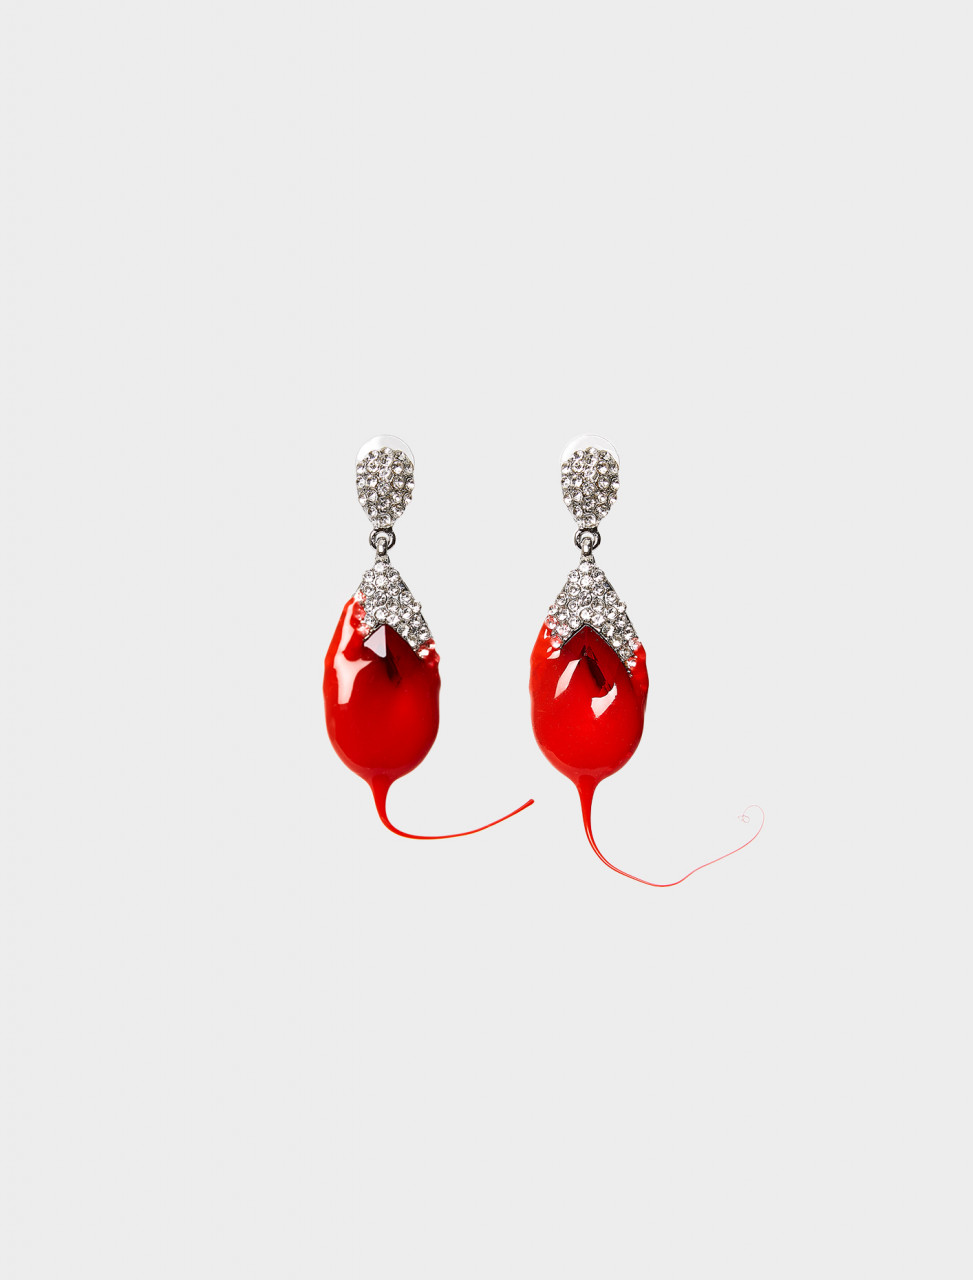 318-FW20AW20AC-07A OTTOLINGER Dipped Earrings in Dark Red